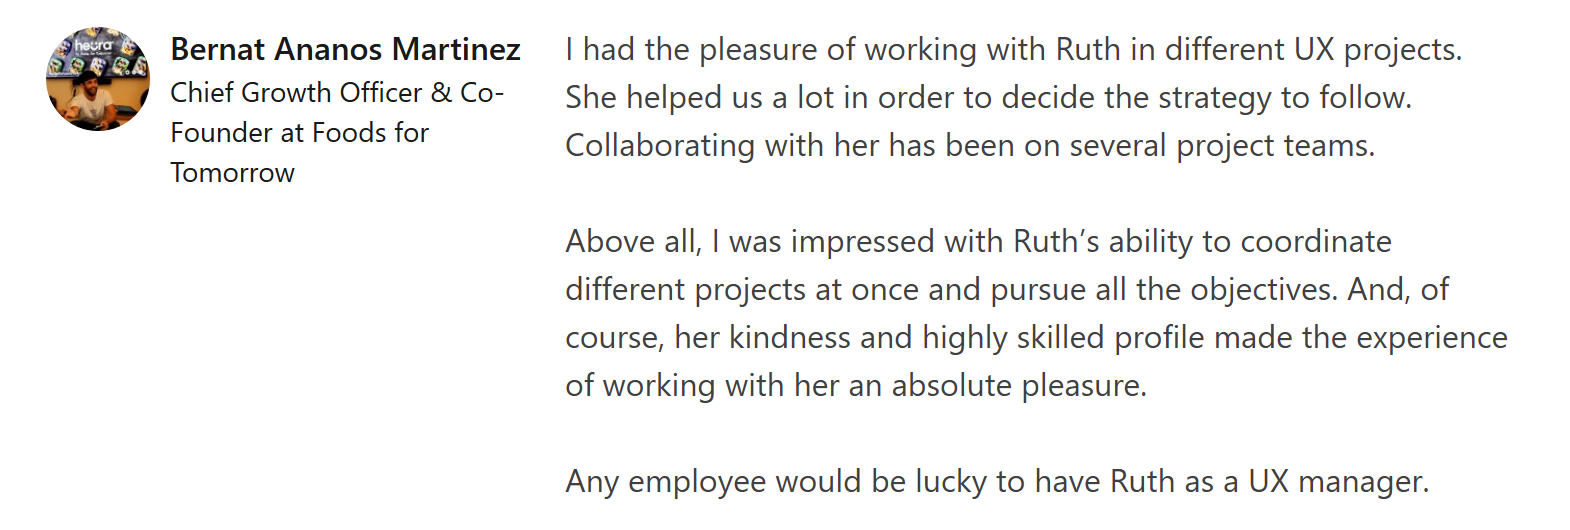 """Linkedin recommendation from Bernat Añaños saying """"I had the pleasure of working with Ruth in different UX projects. She helped us a lot in order to decide the strategy to follow. Collaborating with her has been on several project teams.  Above all, I was impressed with Ruth's ability to coordinate different projects at once and pursue all the objectives. And, of course, her kindness and highly skilled profile made the experience of working with her an absolute pleasure.  Any employee would be lucky to have Ruth as a UX manager."""""""